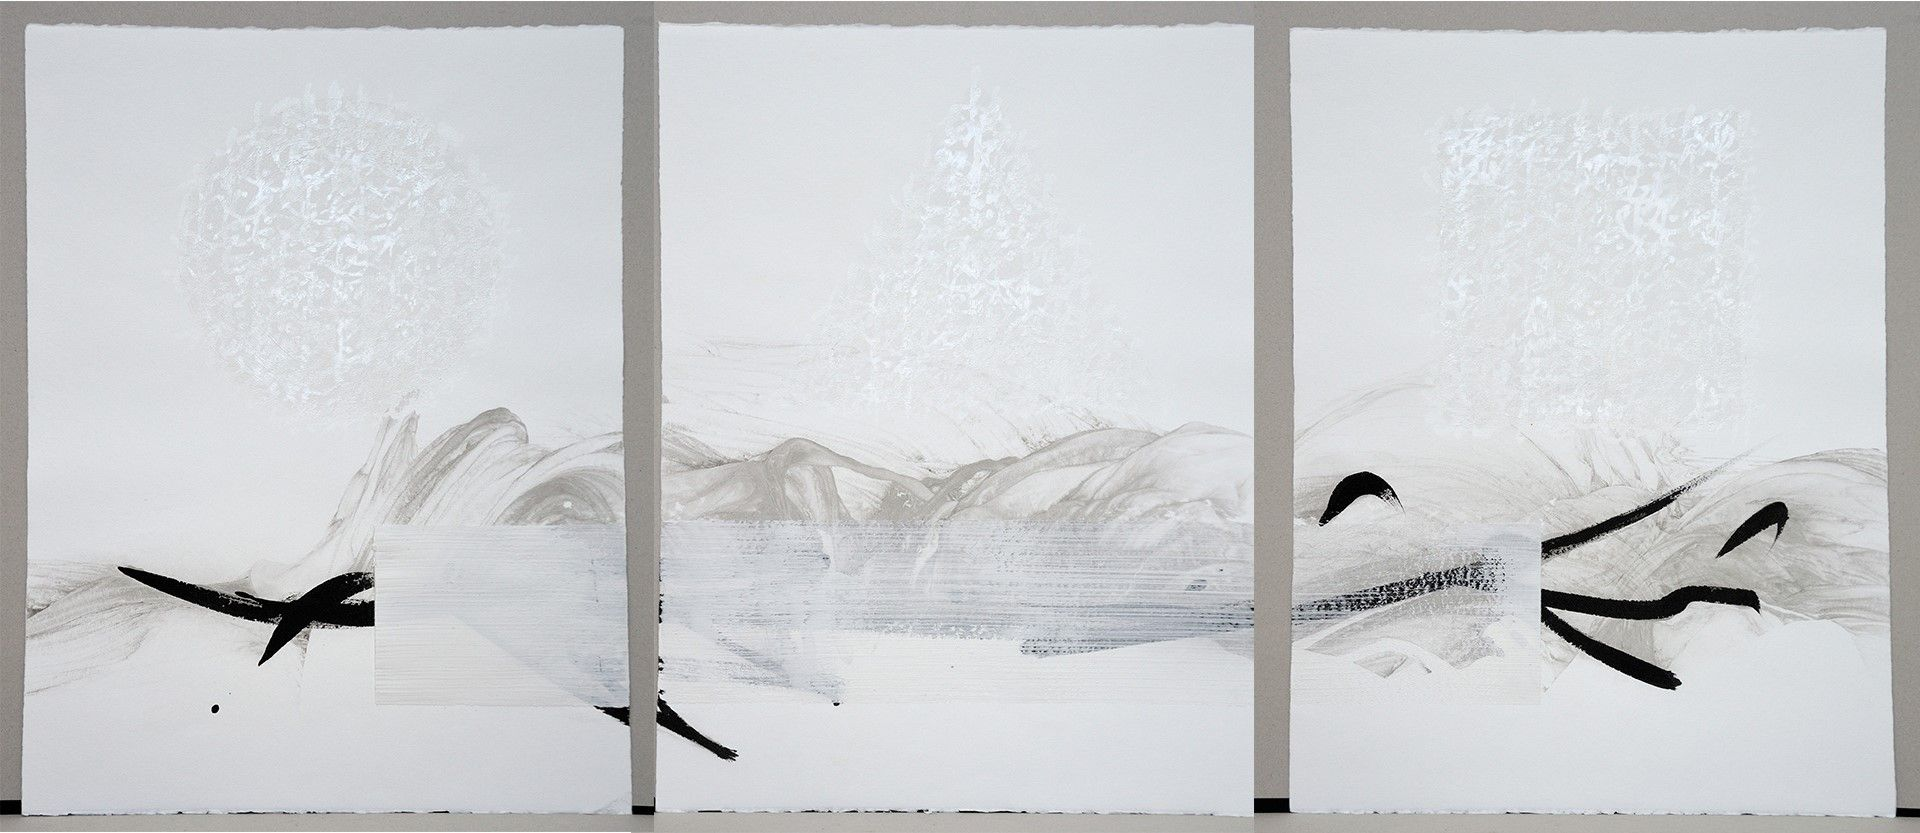 Permanescence N533-T - Hachiro Kanno - Contemporary painting